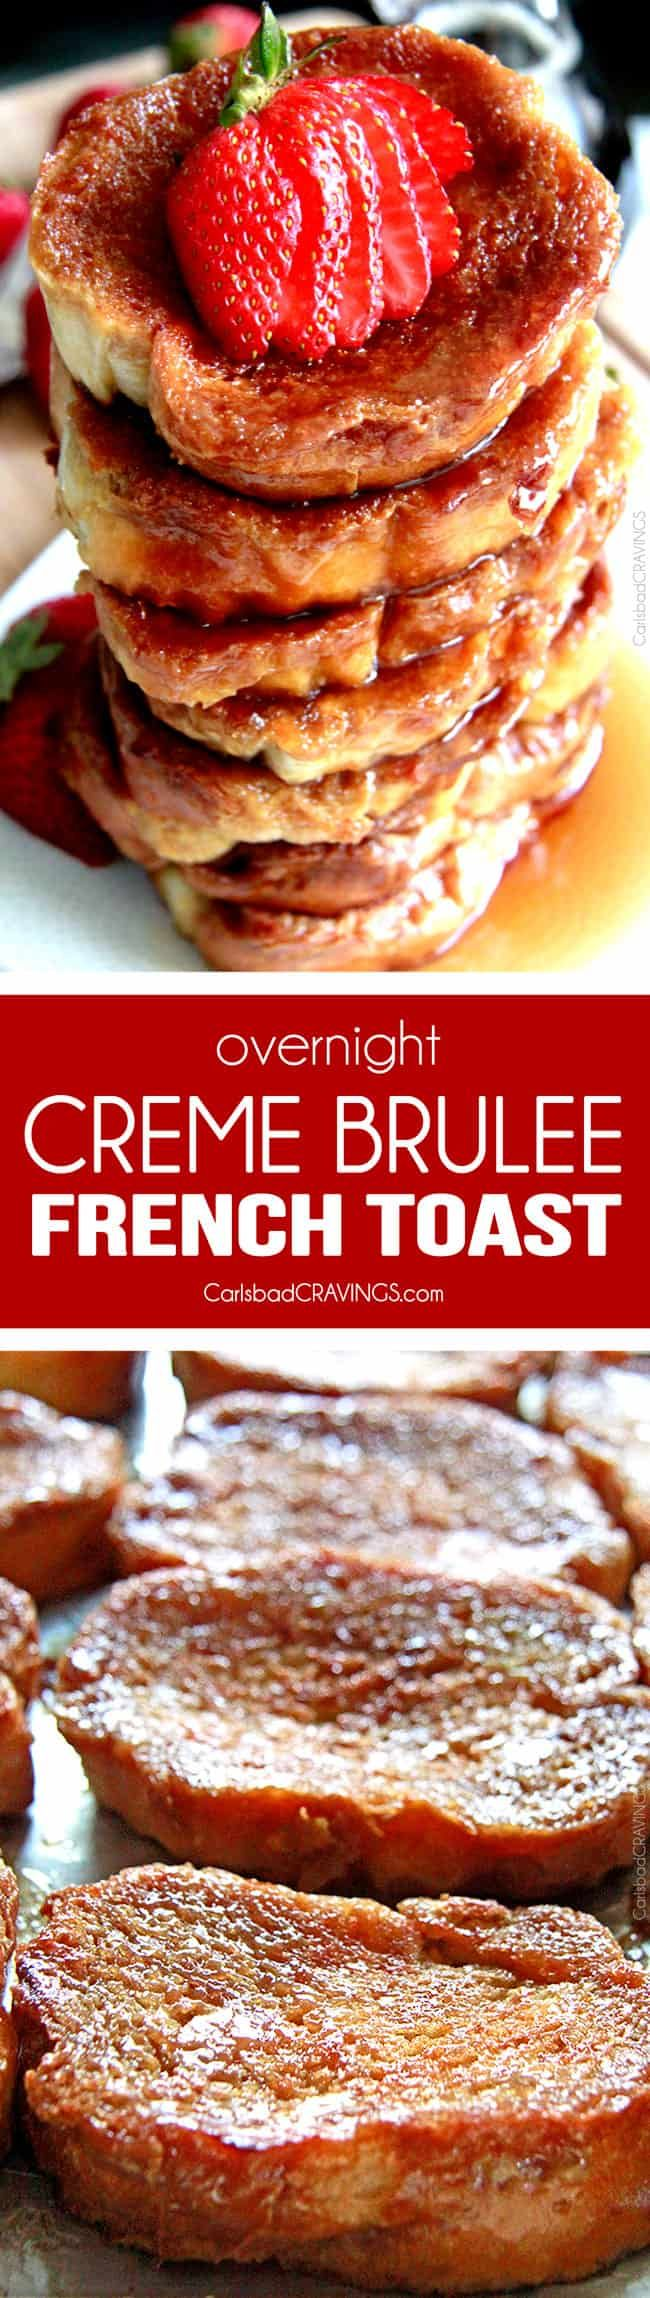 Creme Brulee French Toast tastes like glorious Creme Brulee and can be thrown together in 15 minutes and made the night before for stress free breakfast and entertaining!   via @carlsbadcraving